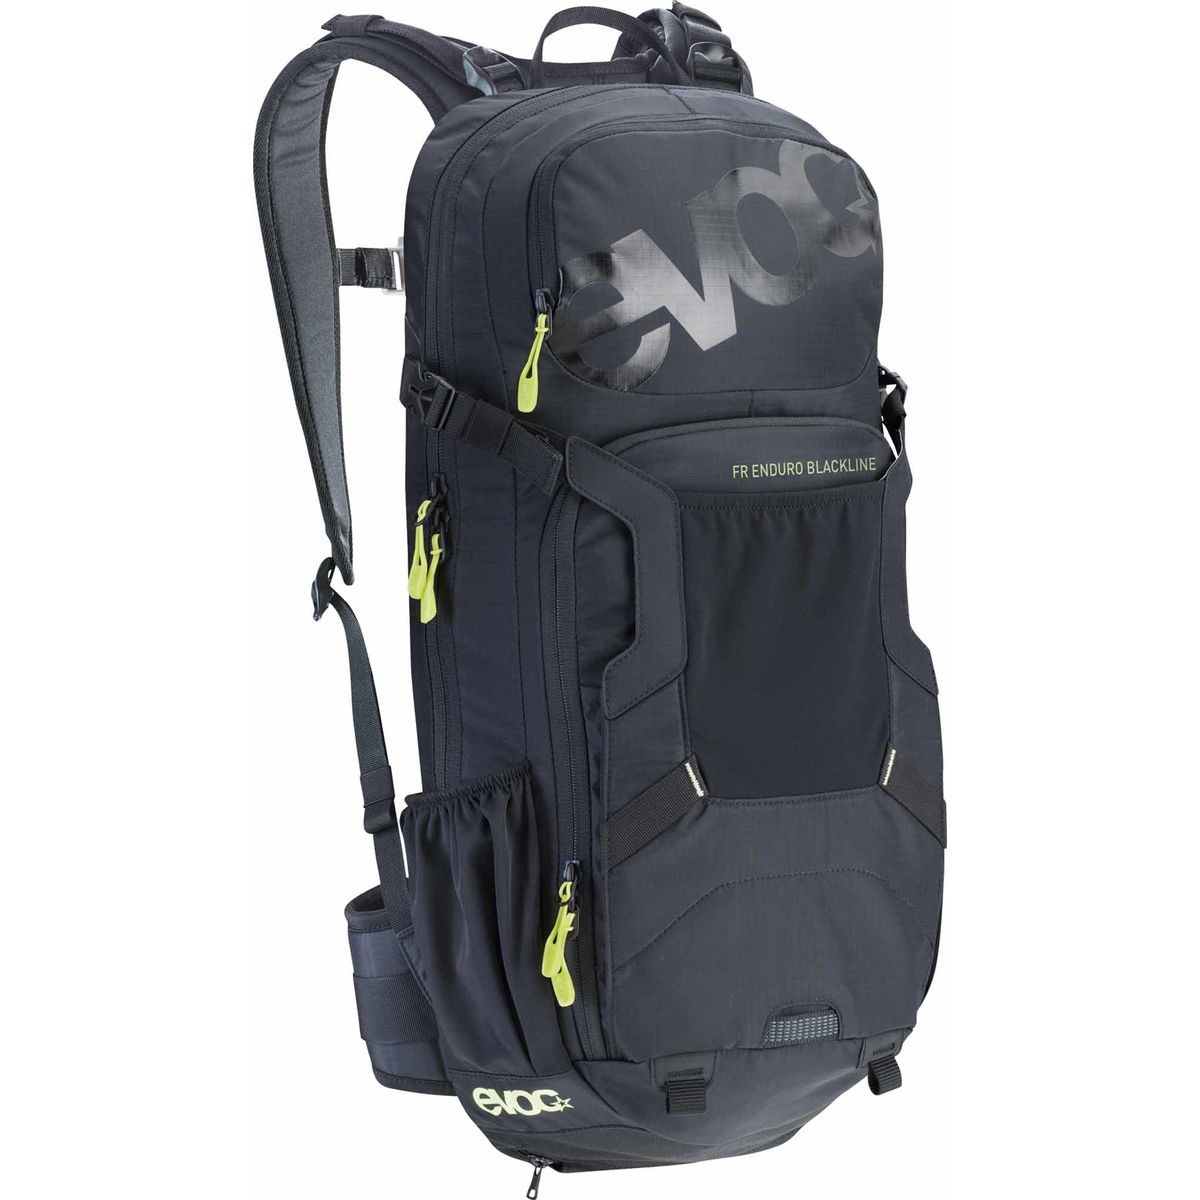 ENDURO BLACKLINE 16L backpack